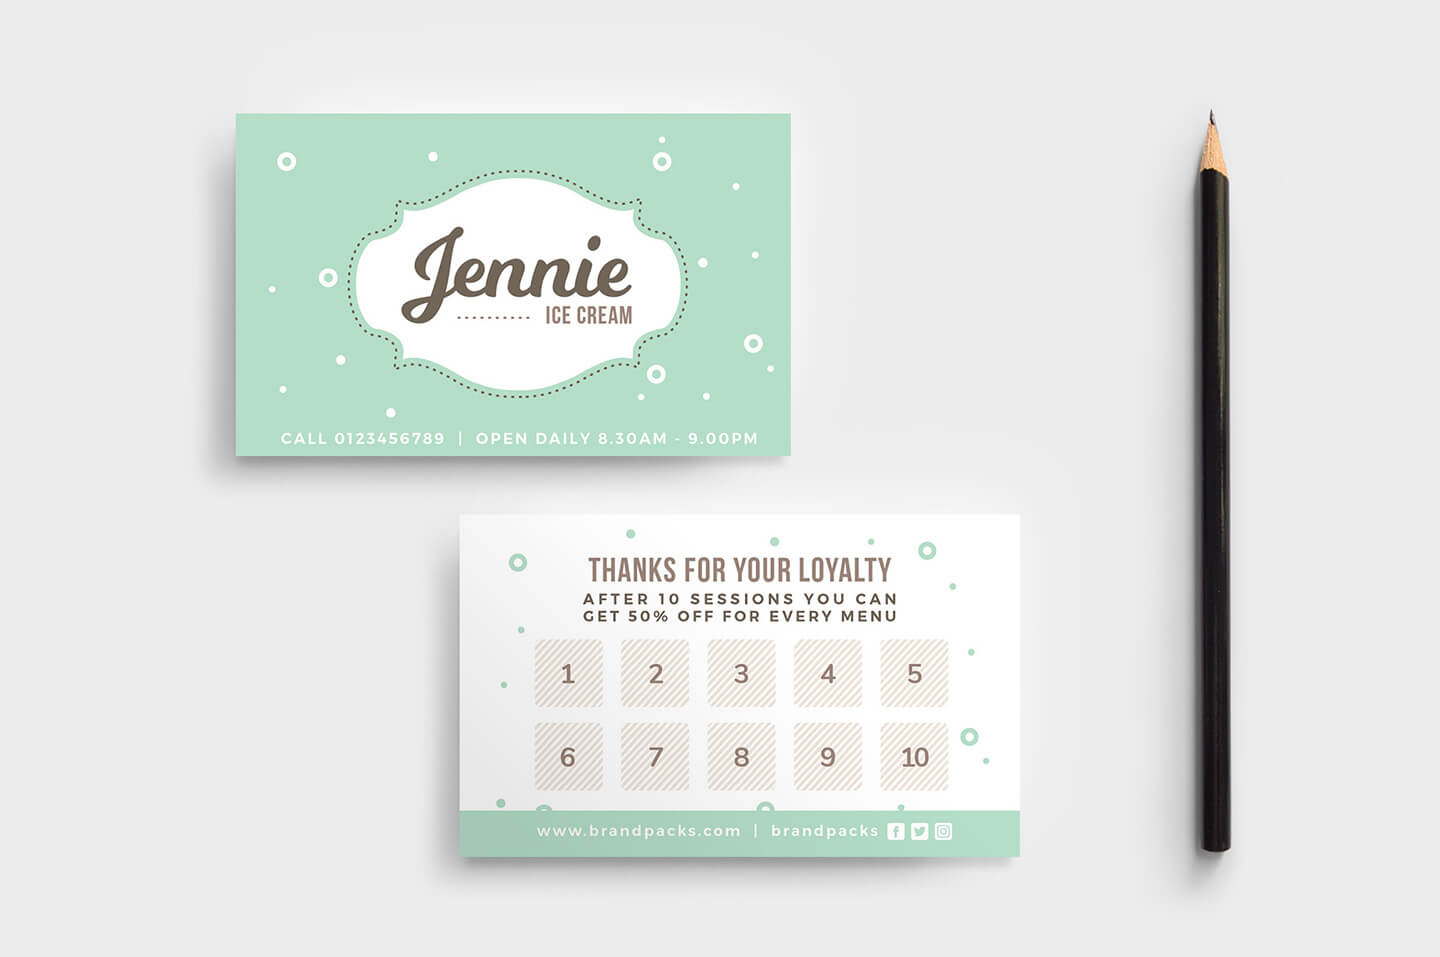 Free Loyalty Card Templates - Psd, Ai & Vector - Brandpacks For Membership Card Template Free